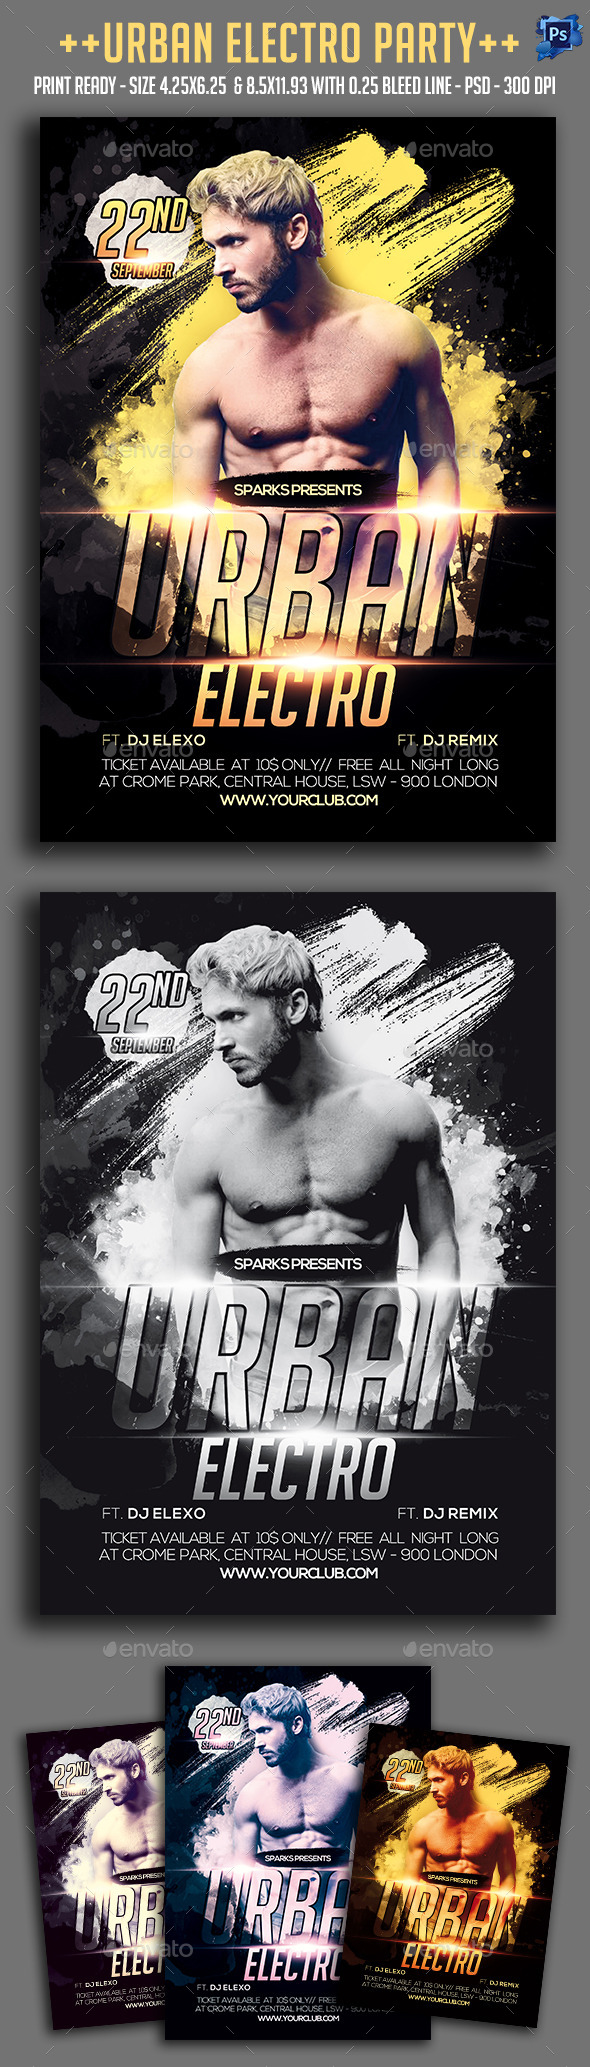 Urban Electro Party Flyer - Clubs & Parties Events